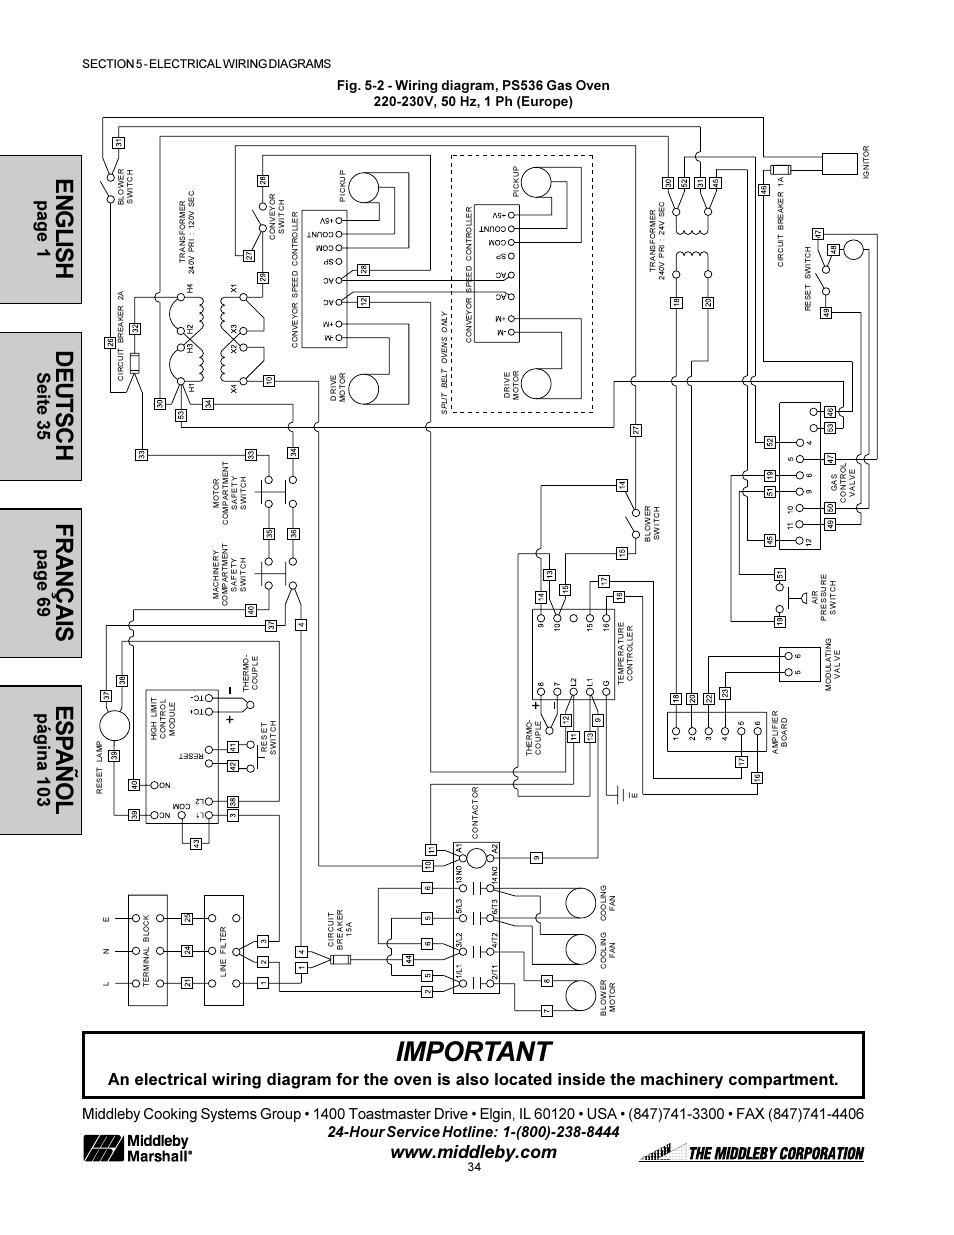 important, english, deutsch middleby marshall model ps536 user Wire Diagram 240V Hot Tub